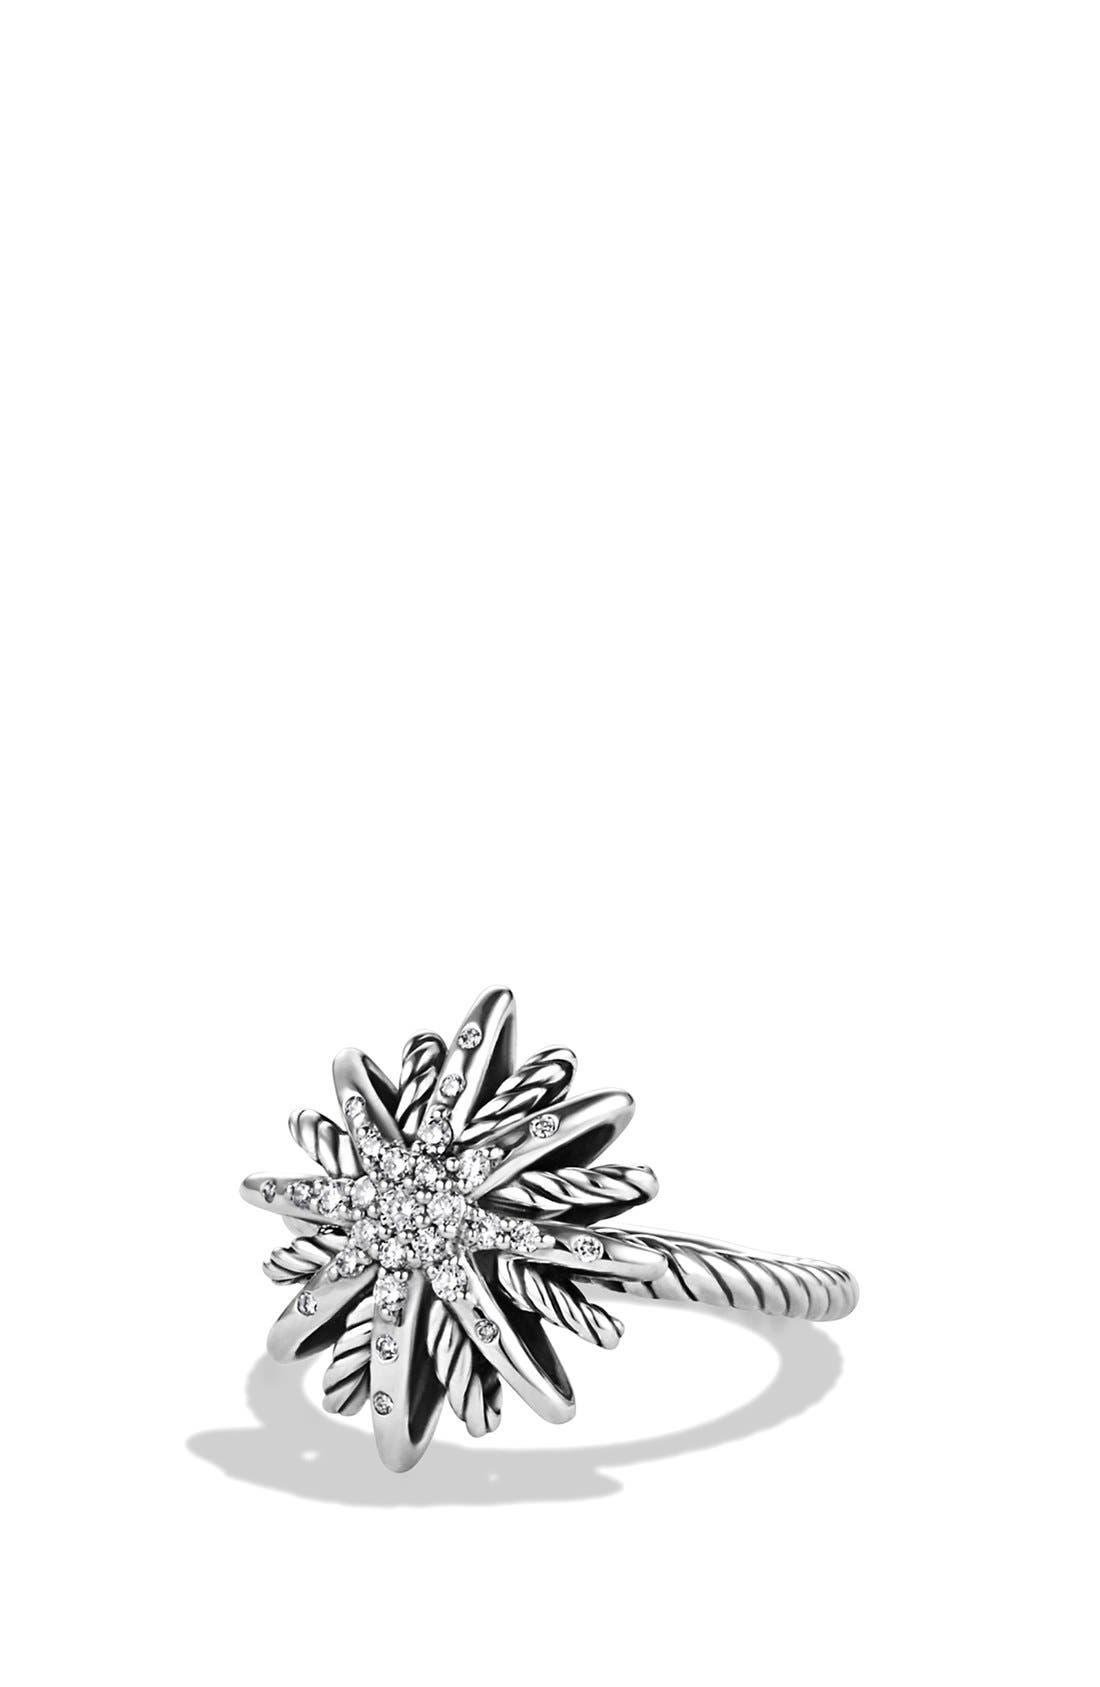 'Starburst' Ring with Diamonds,                         Main,                         color, 040